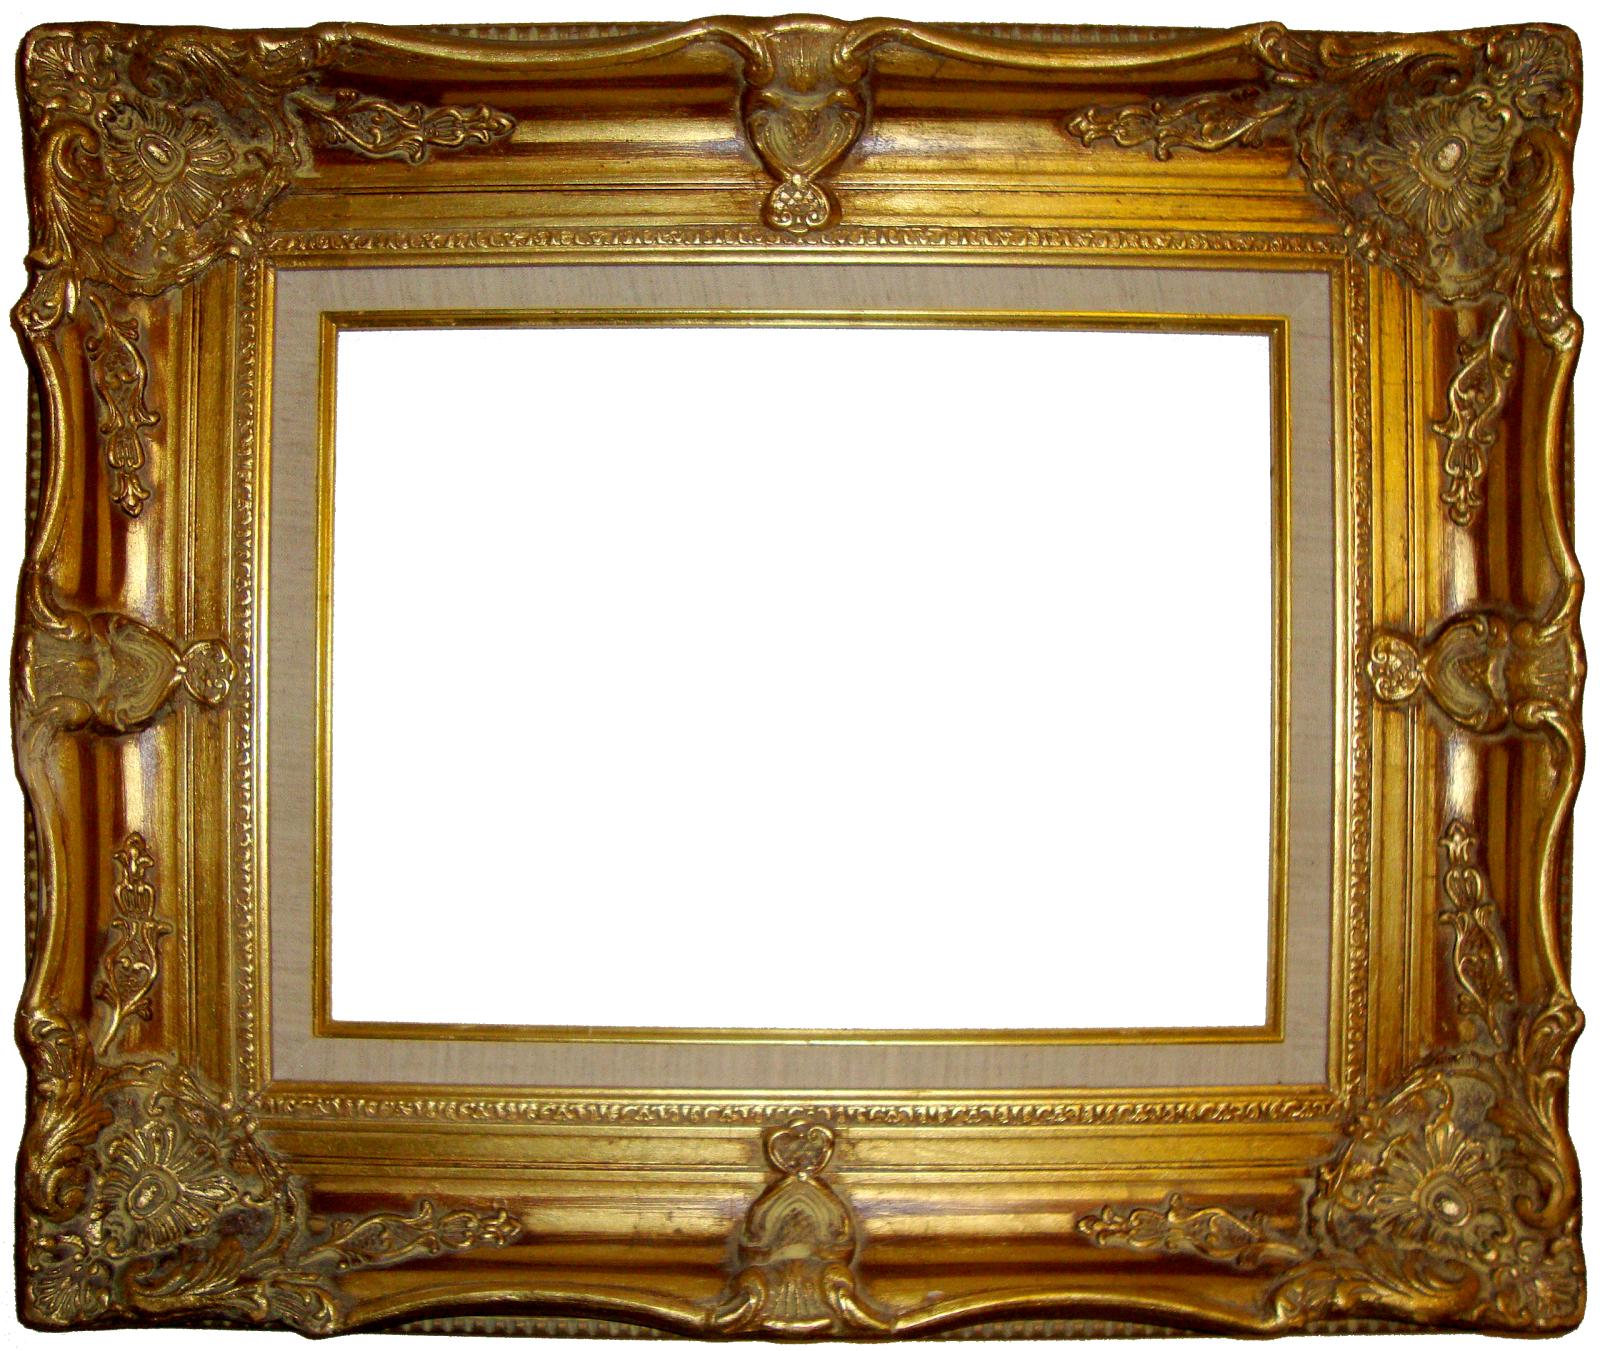 17 best images about puo frames on pinterest antiques antigua and digital photo frame